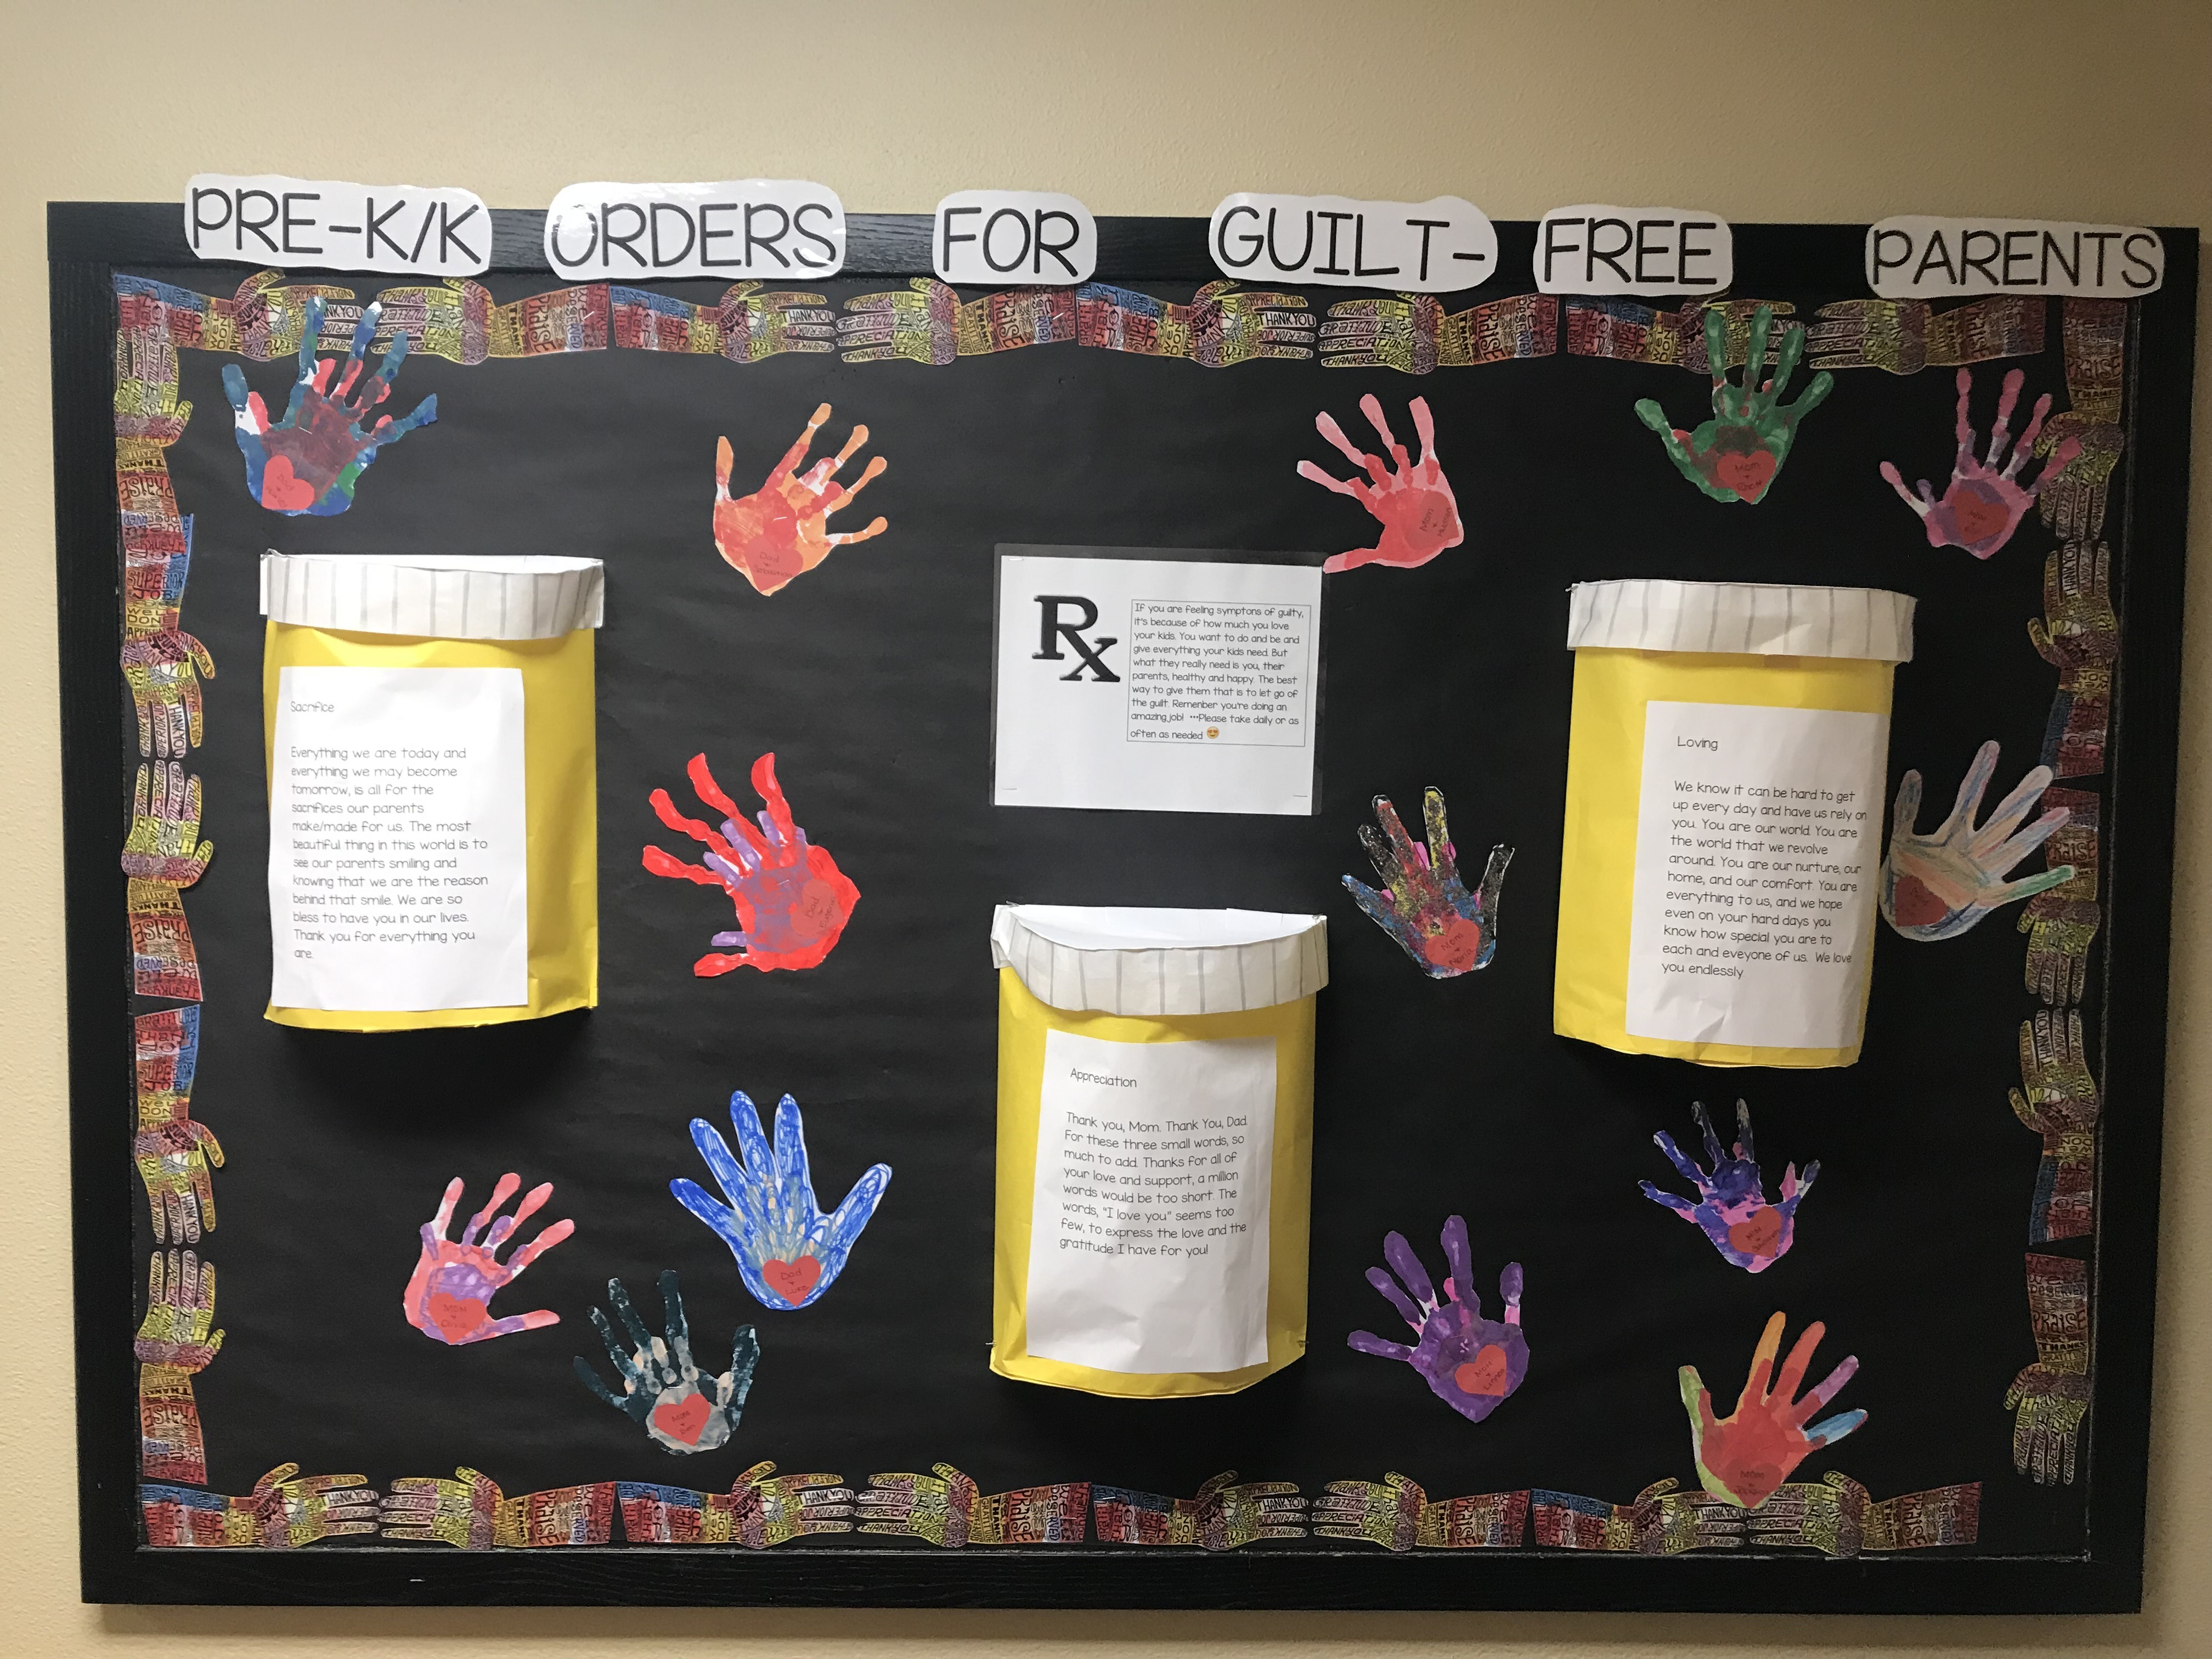 Primrose School of Anson-Zionsville school's bulletin board